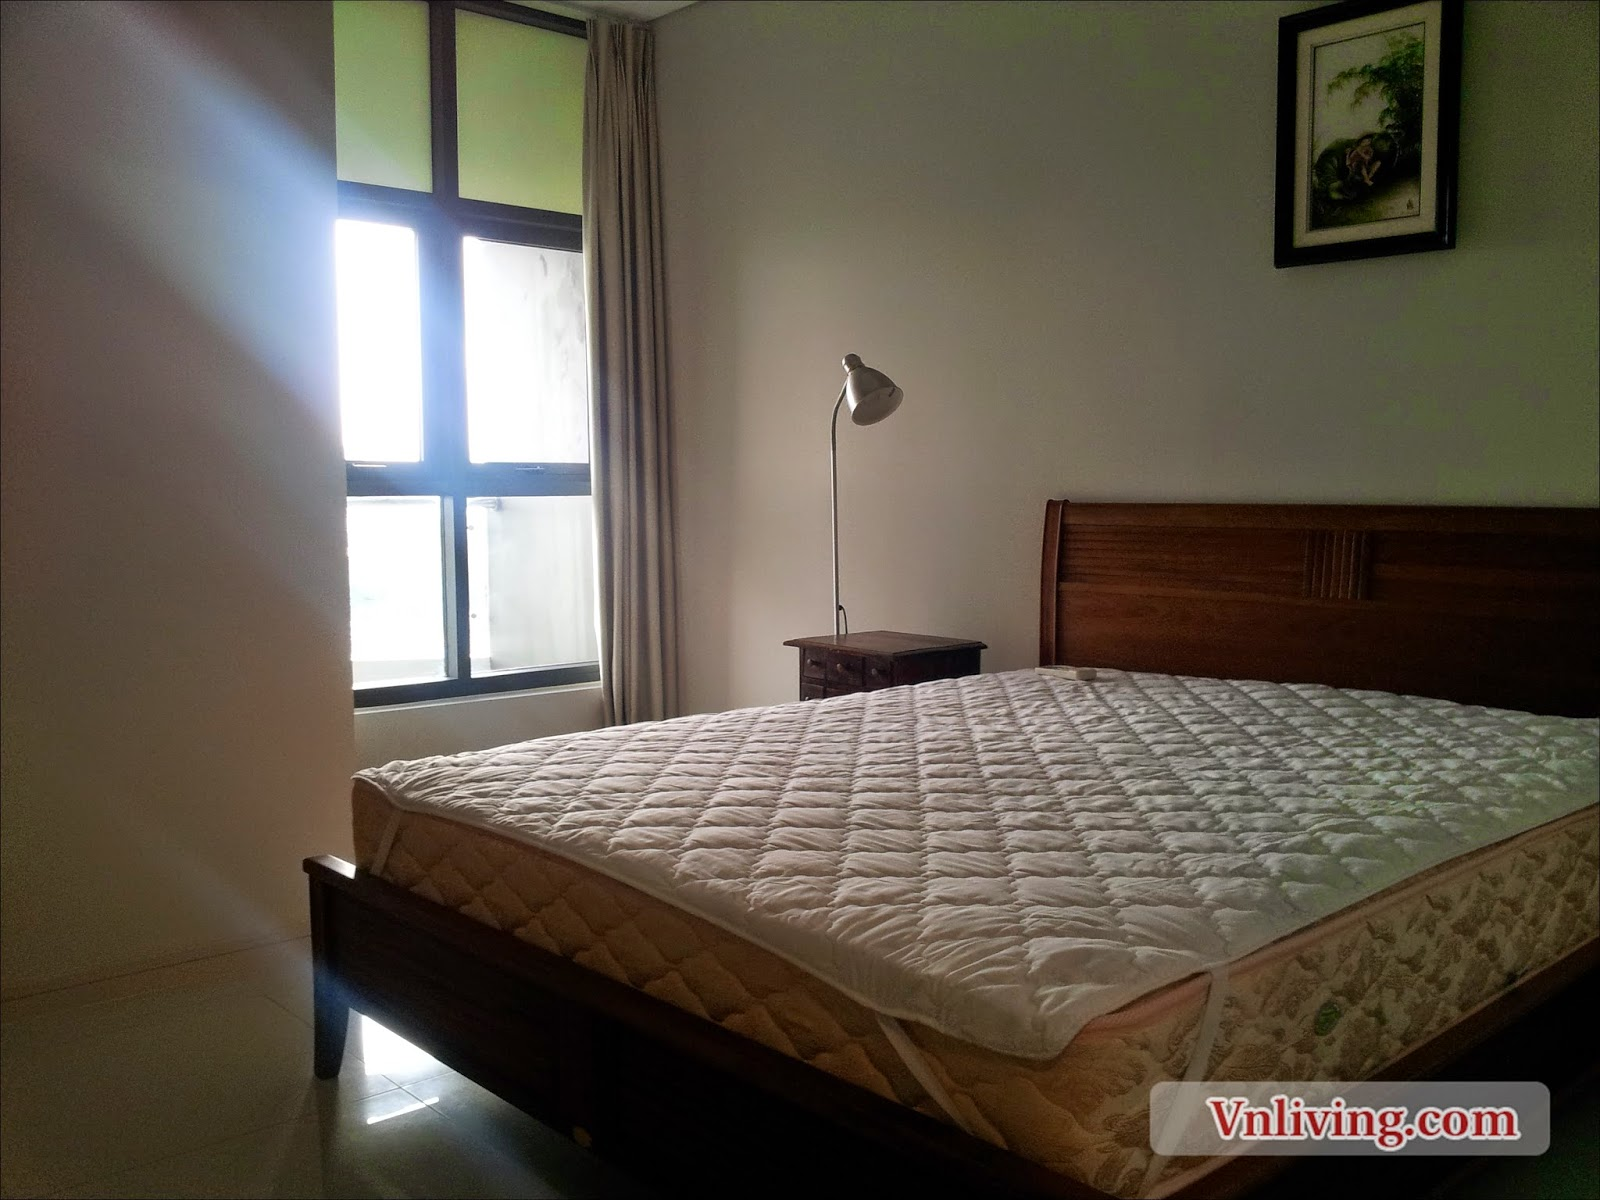 City Garden apartment for rent 2 bedrooms beautiful furniture